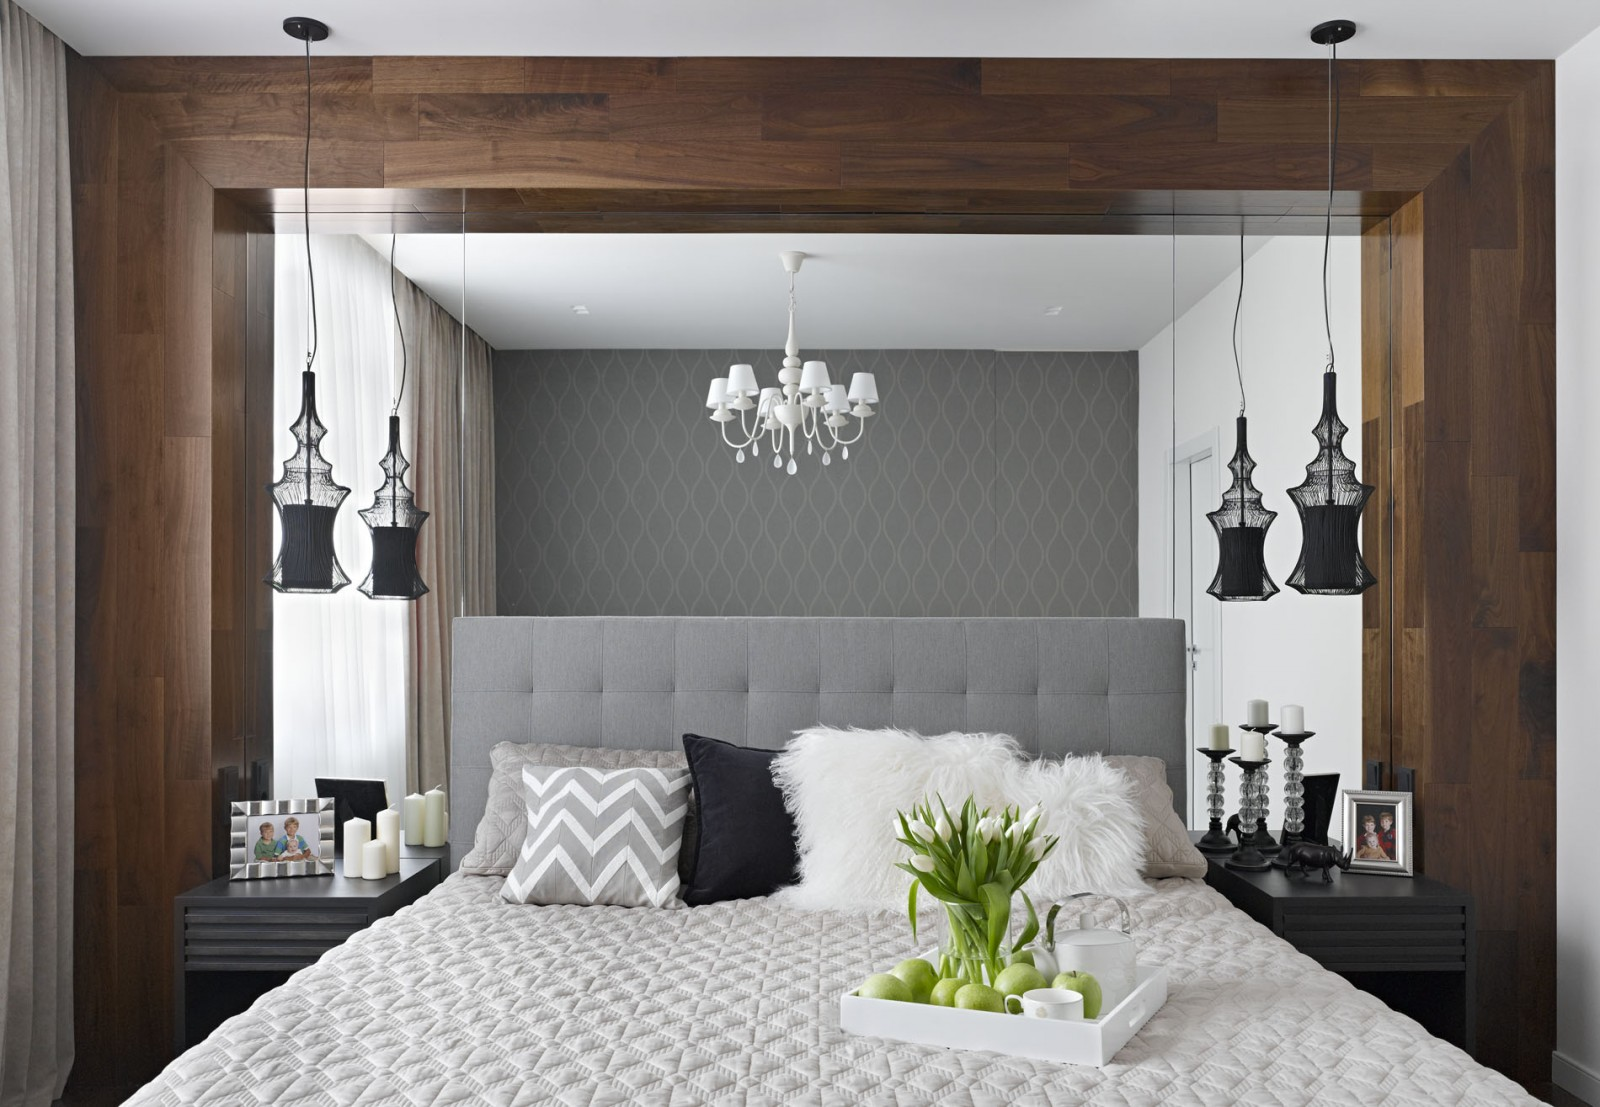 Modern Bedroom Ideas For Small Rooms Fascinating 20 Small Bedroom Ideas That Will Leave You Speechless . Design Inspiration